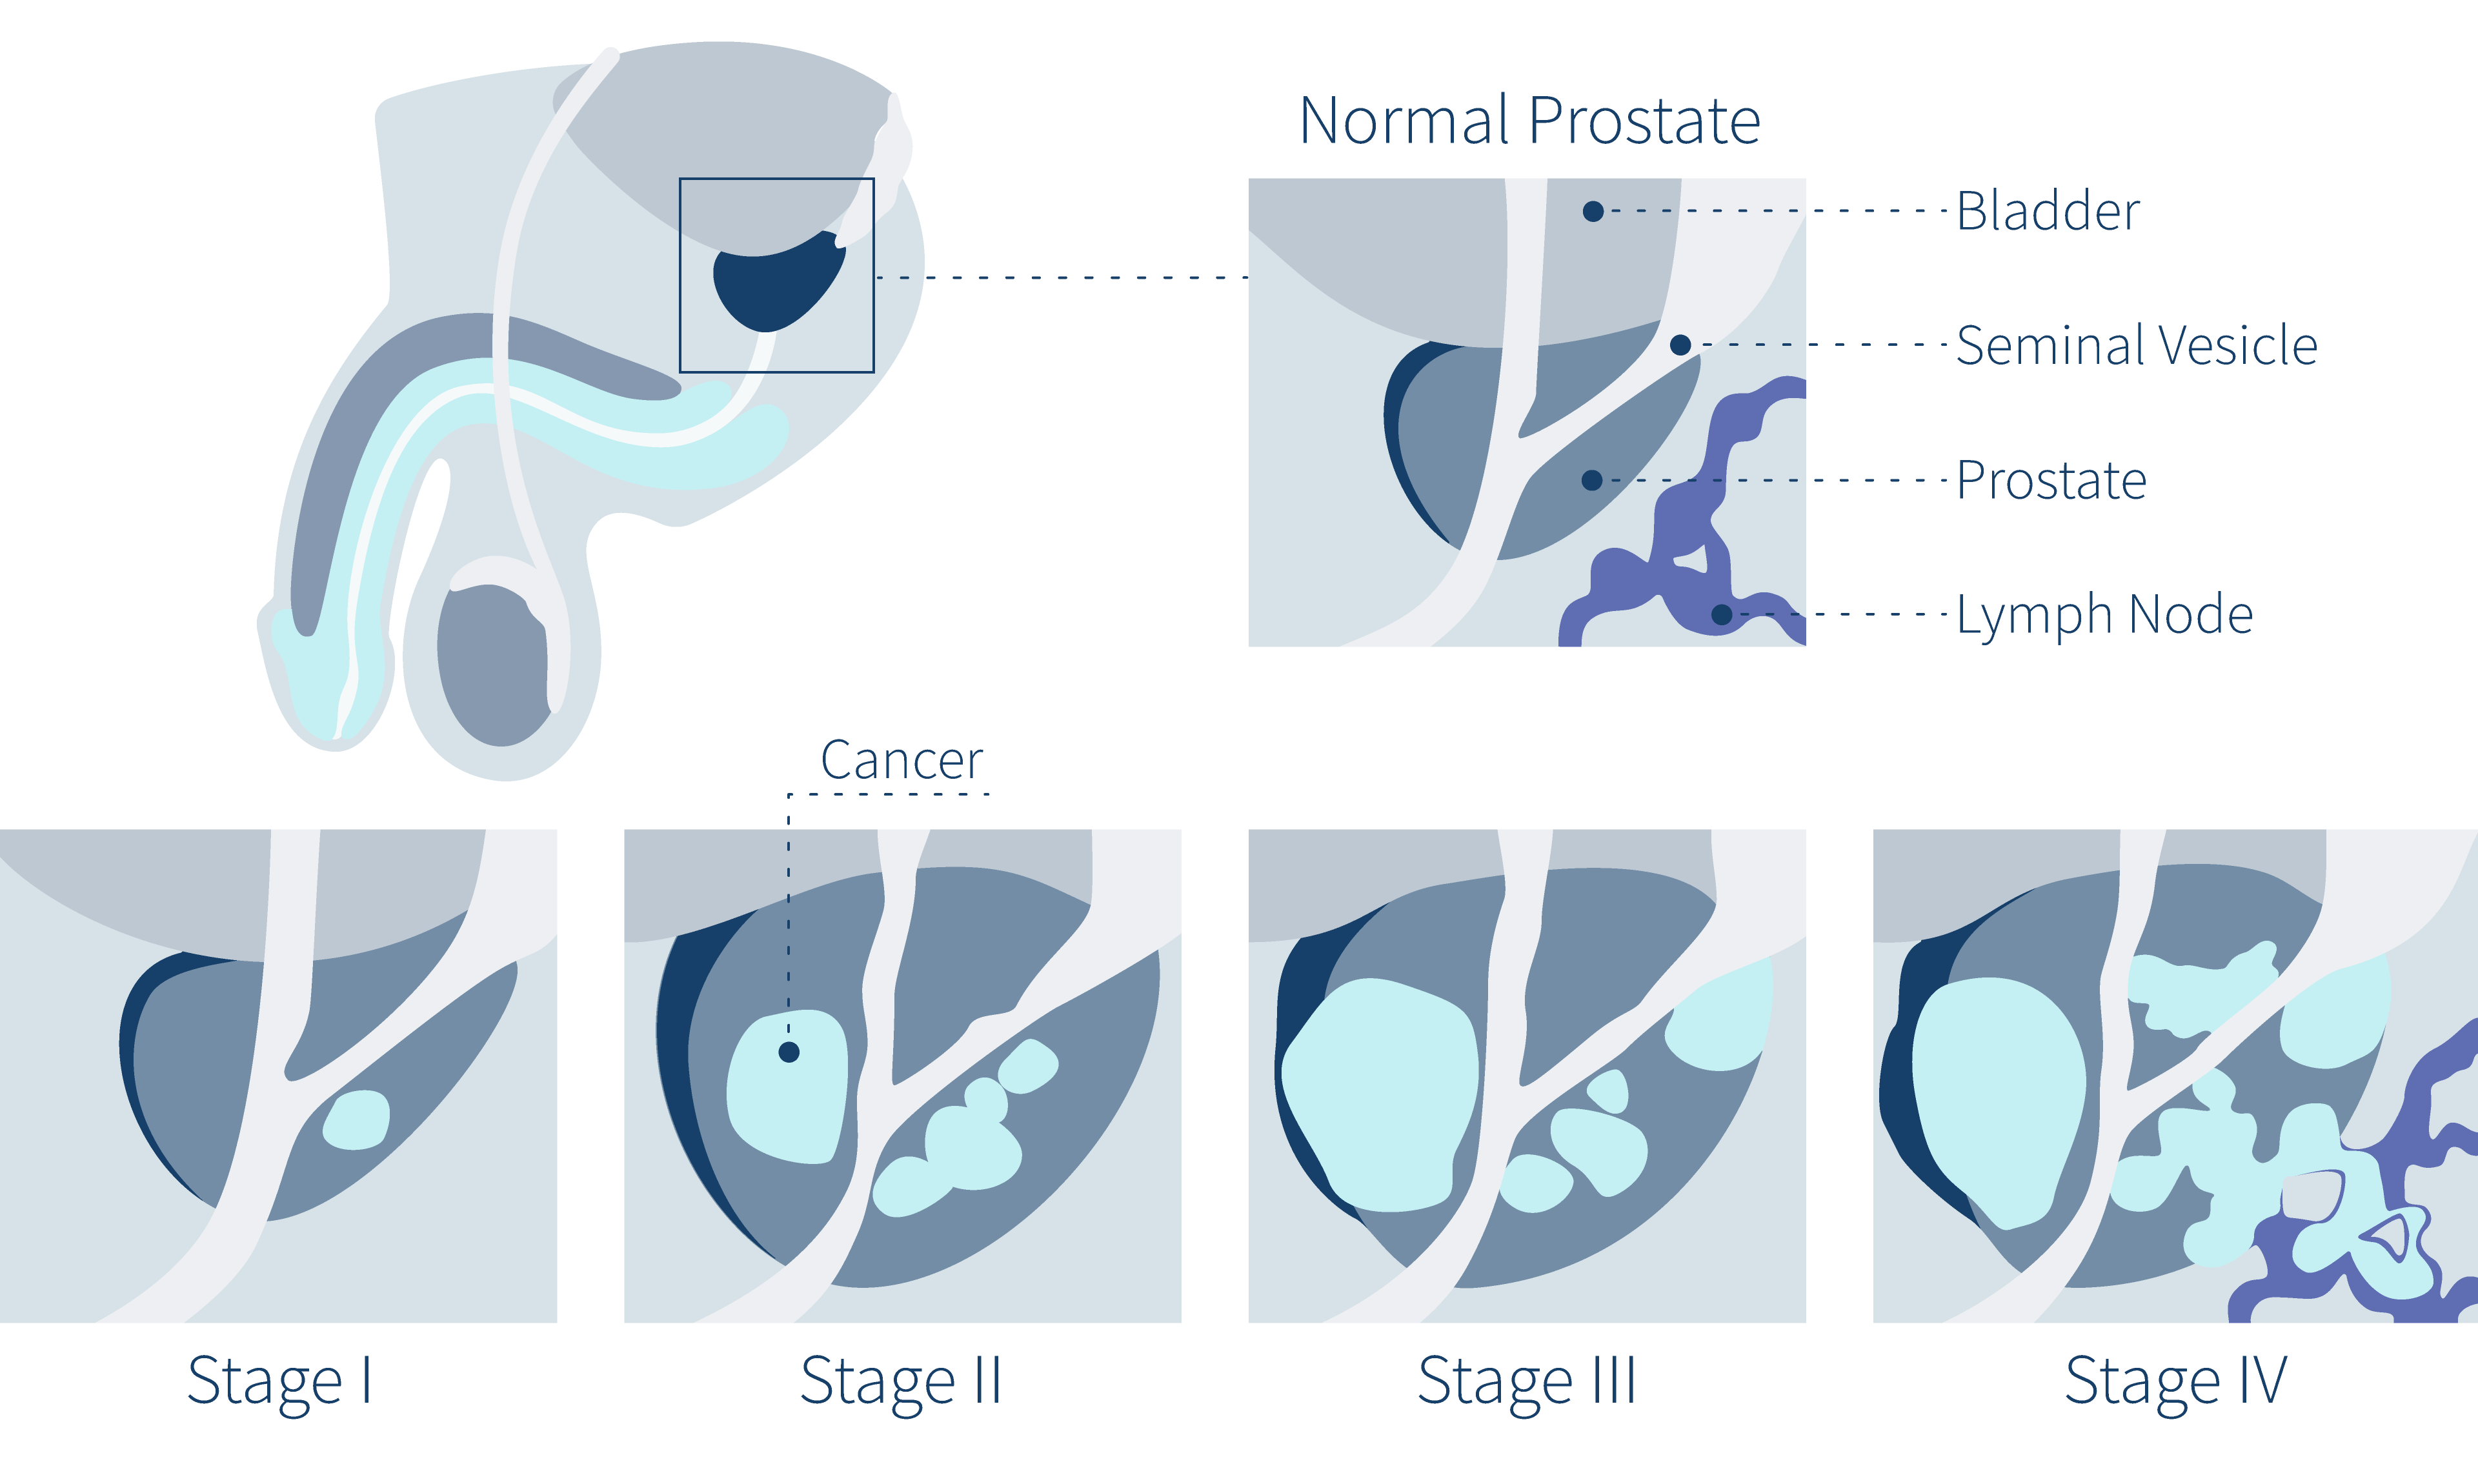 prostate-cancer-symptoms-stages-of-prostate-cancer-diagram